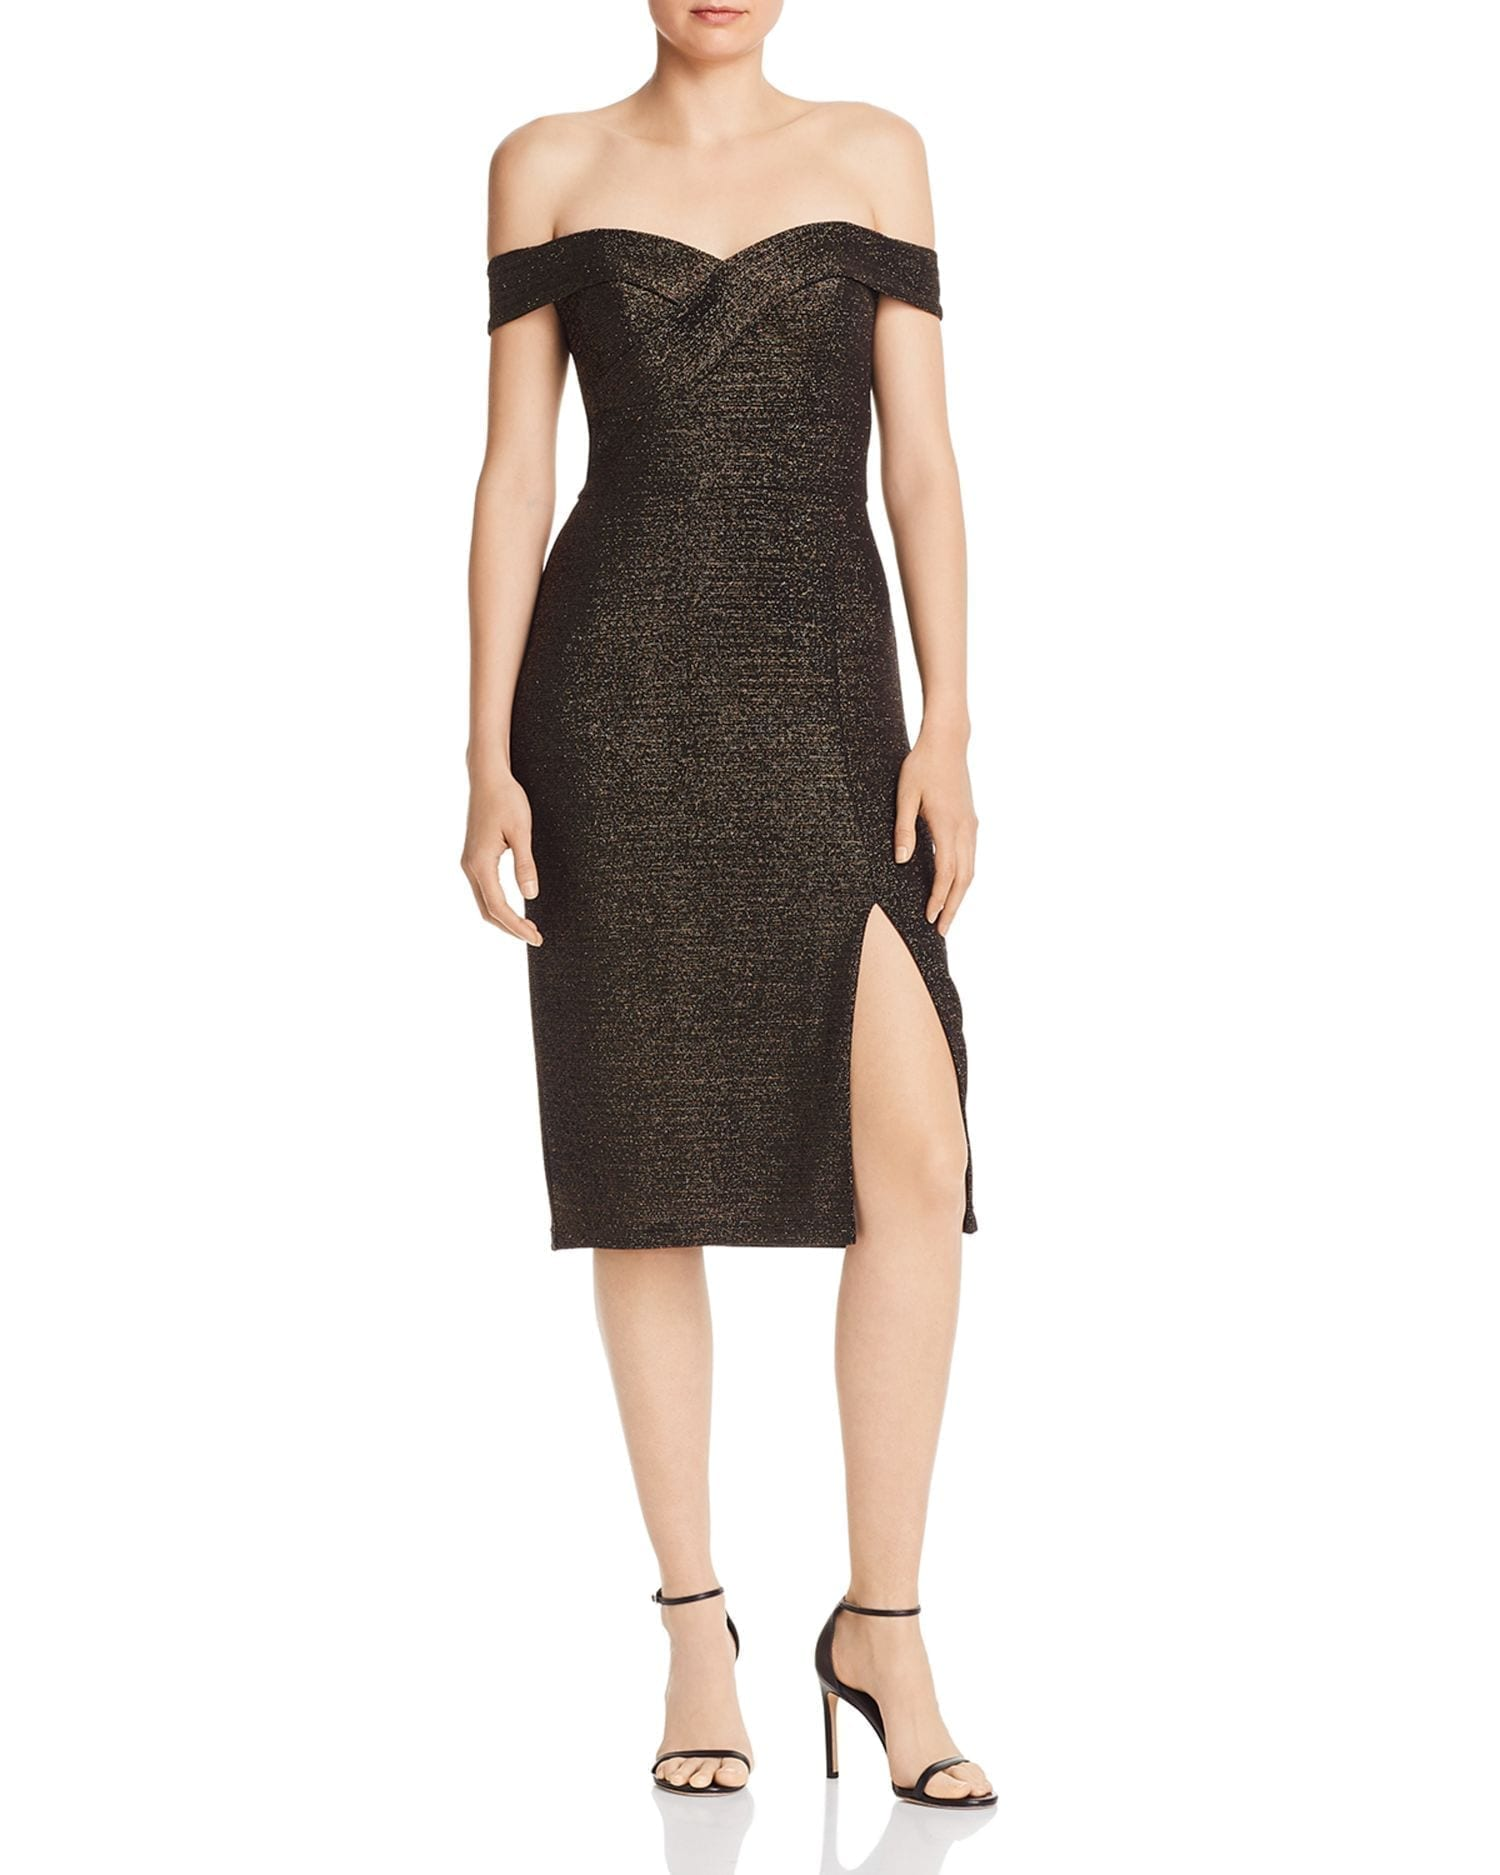 AIDAN BY AIDAN MATTOX Metallic Knit Cocktail Dress